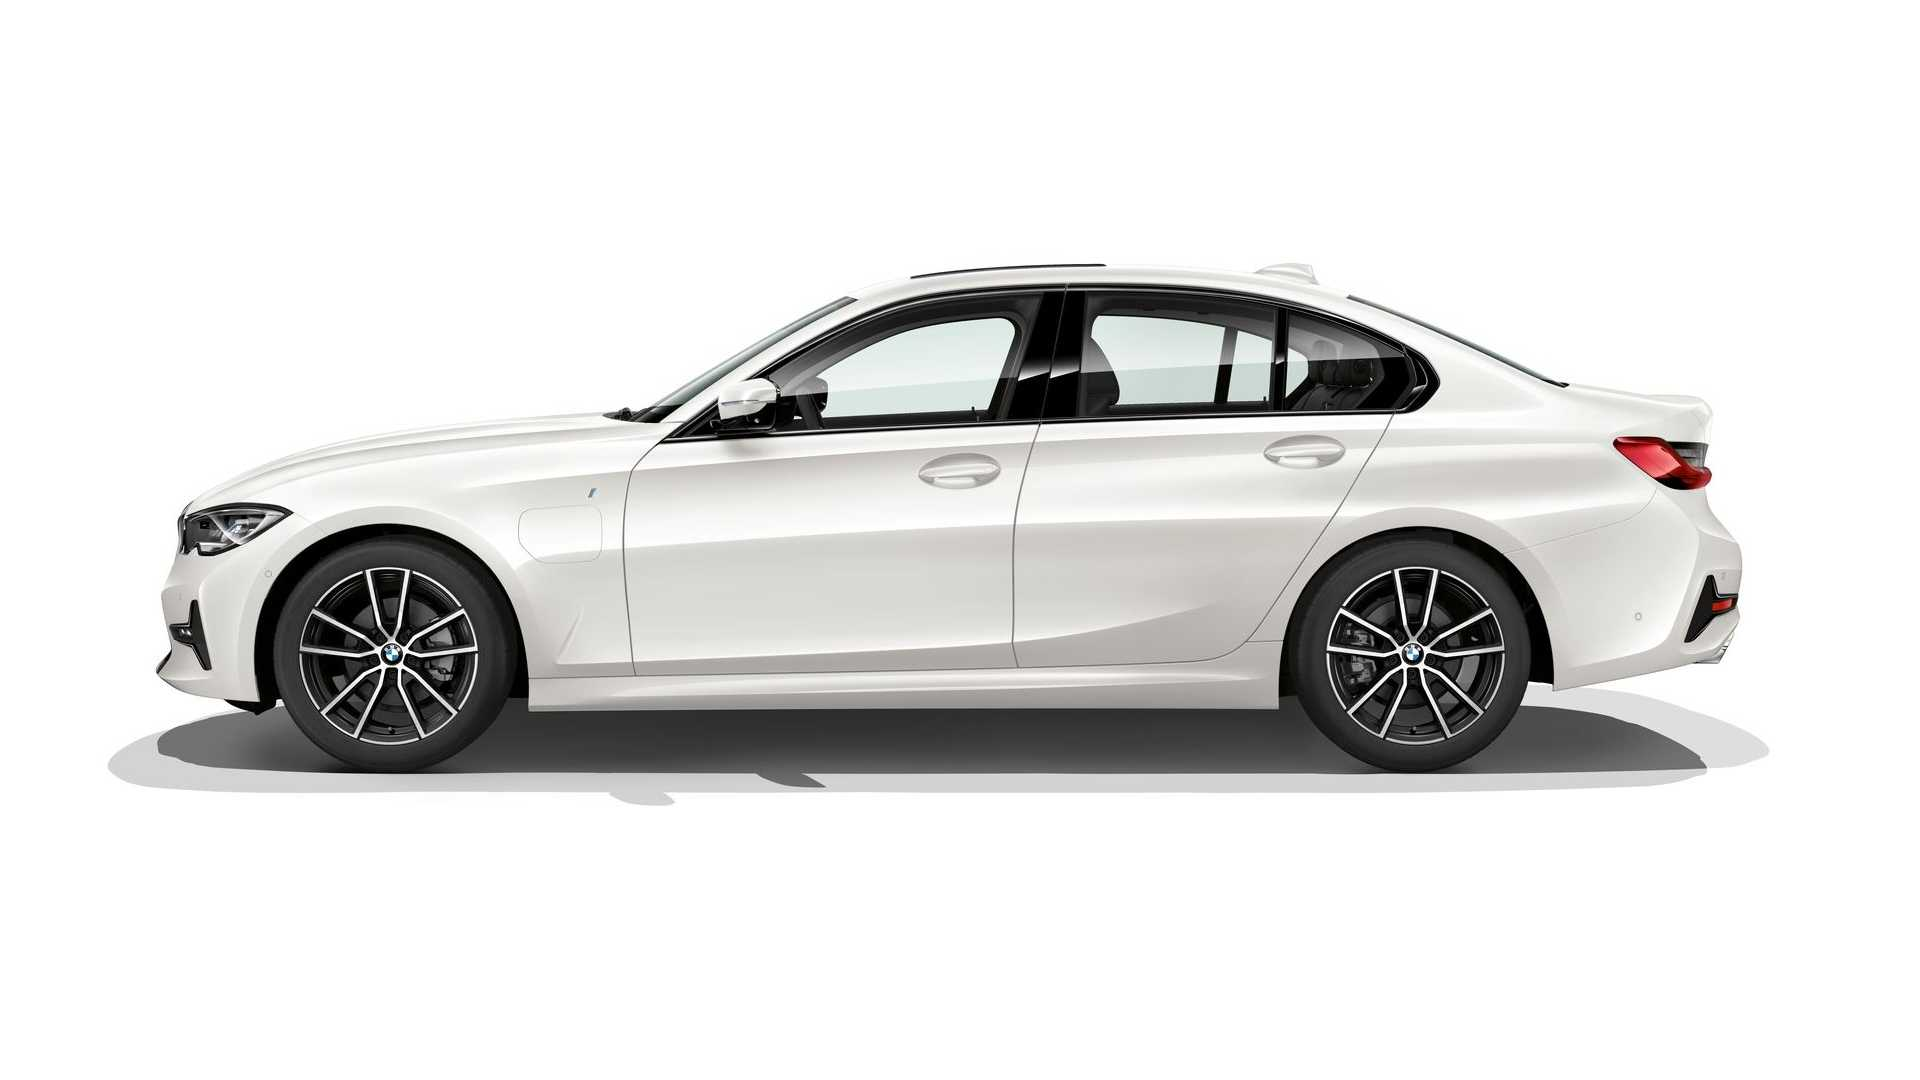 36 New 2019 BMW 3 Series Edrive Phev Concept And Review